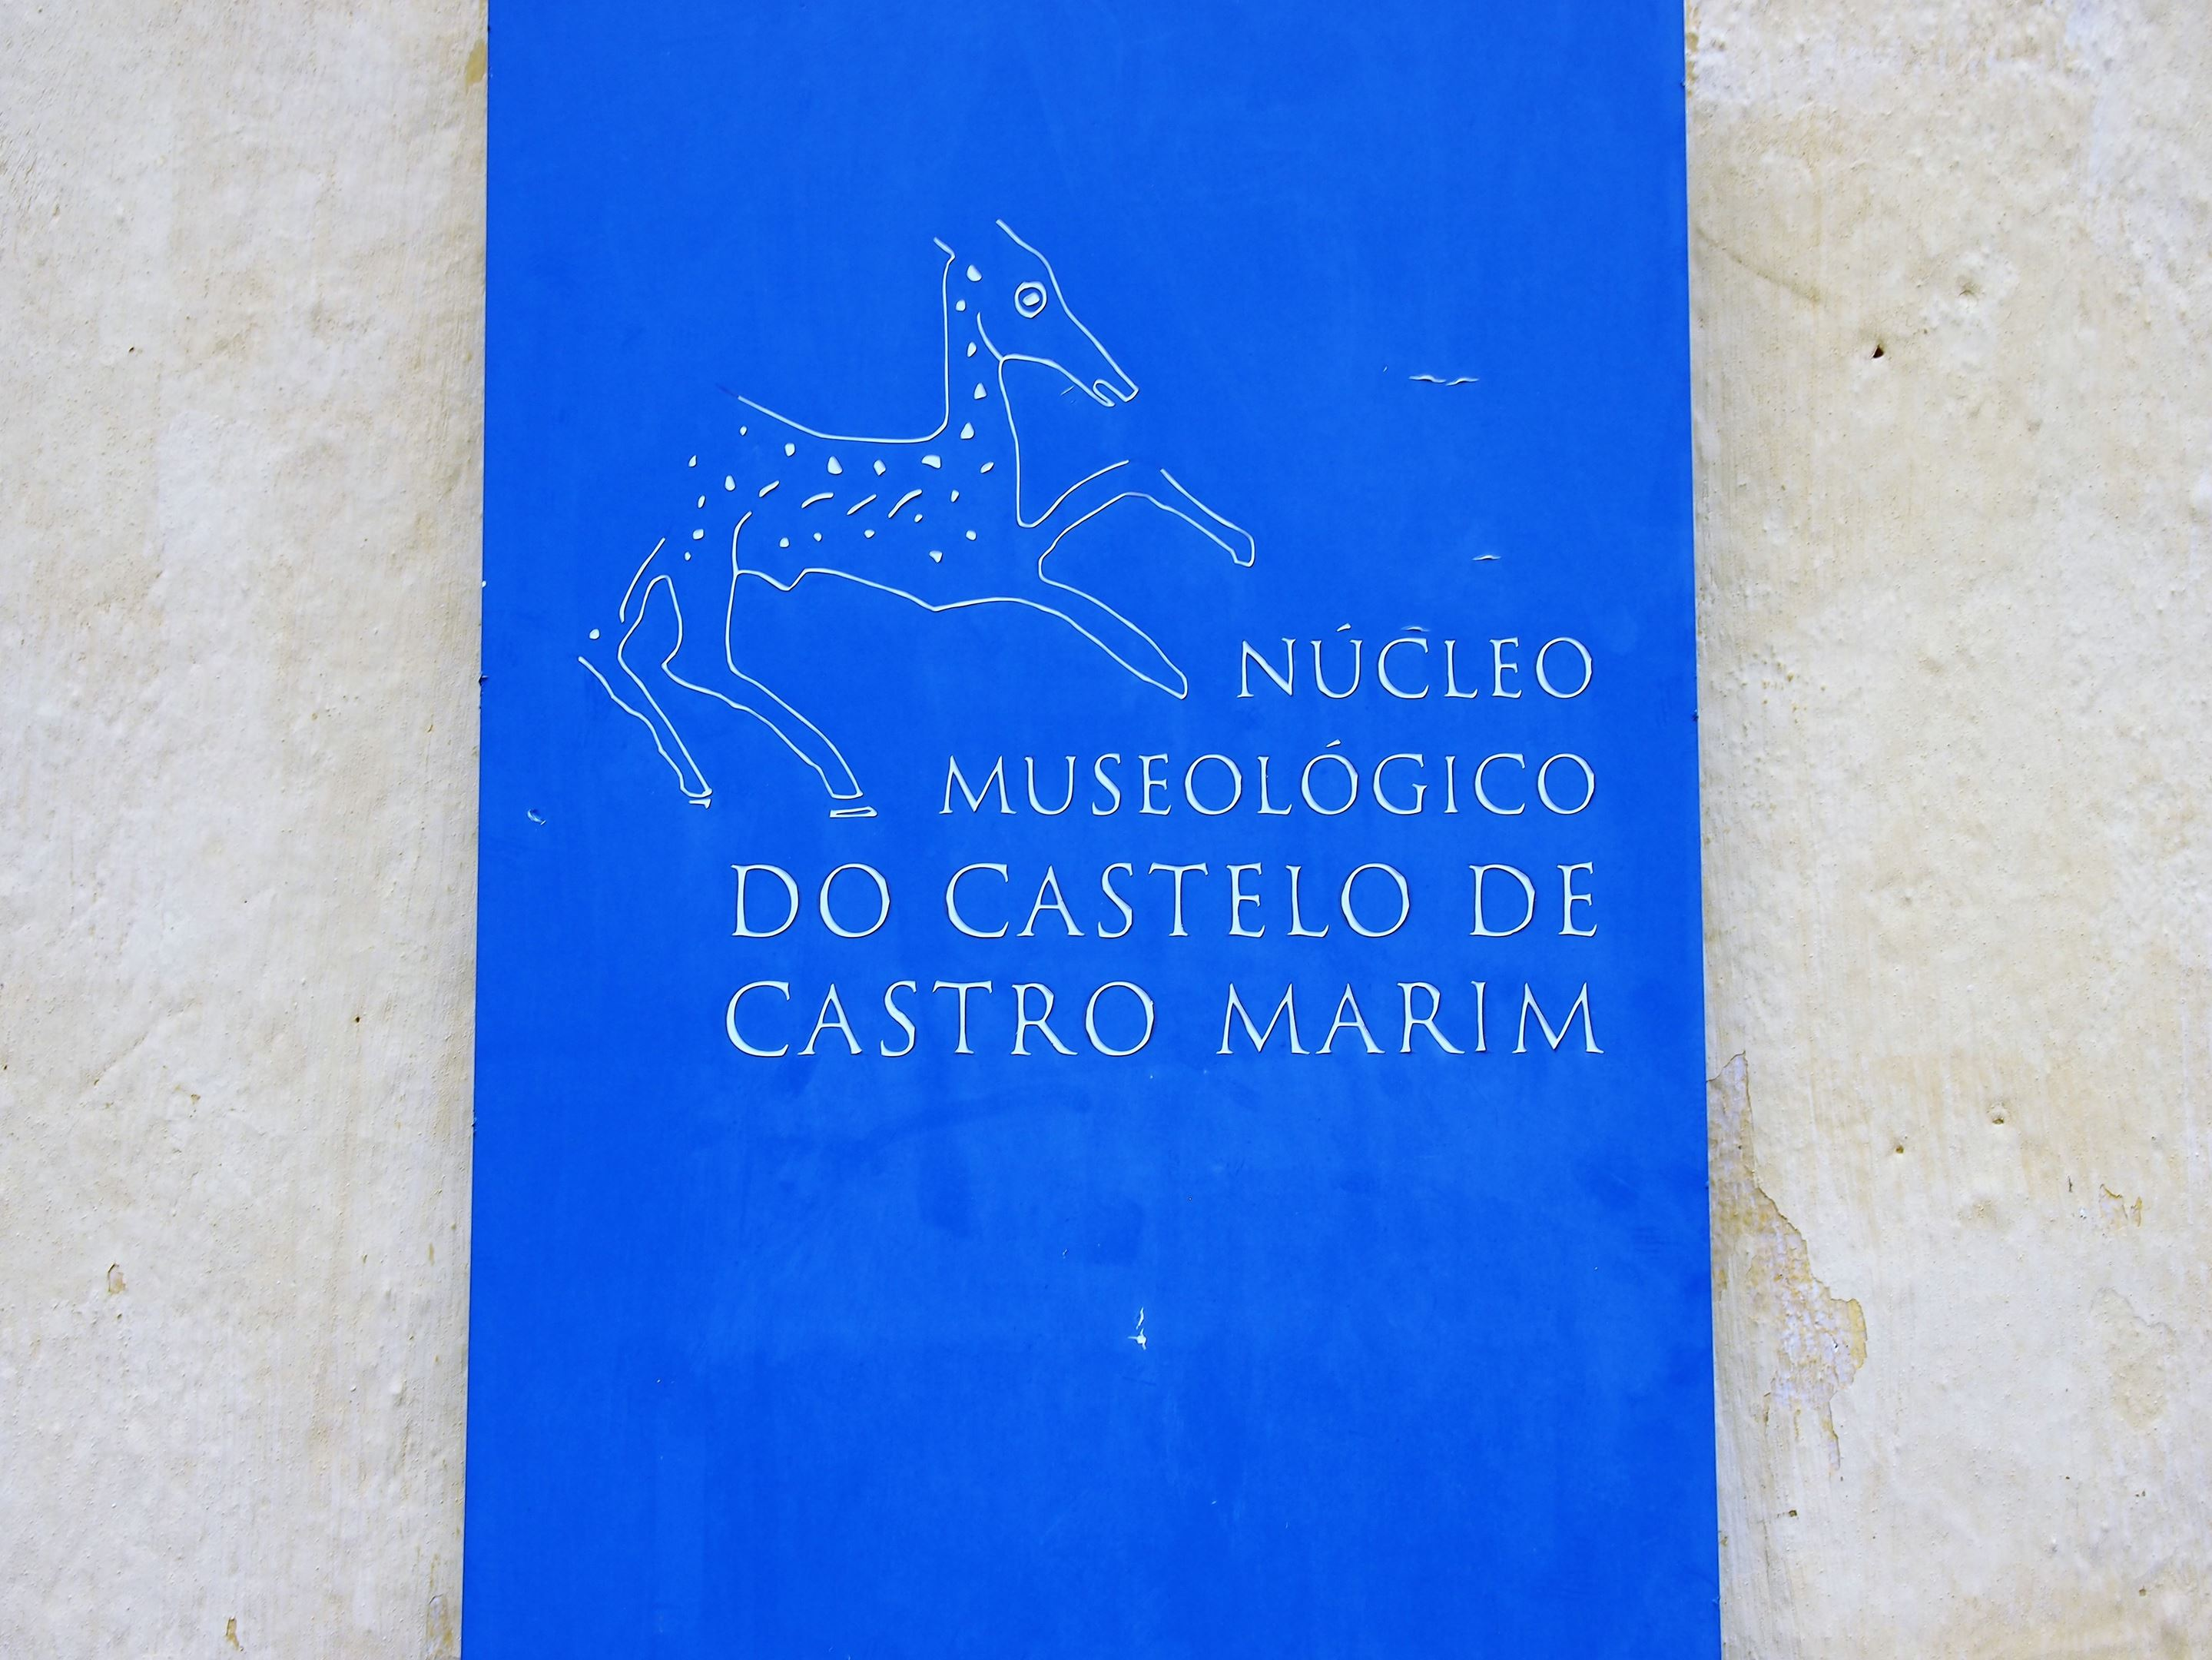 The archaeological museum inside the Castro Marim castle.